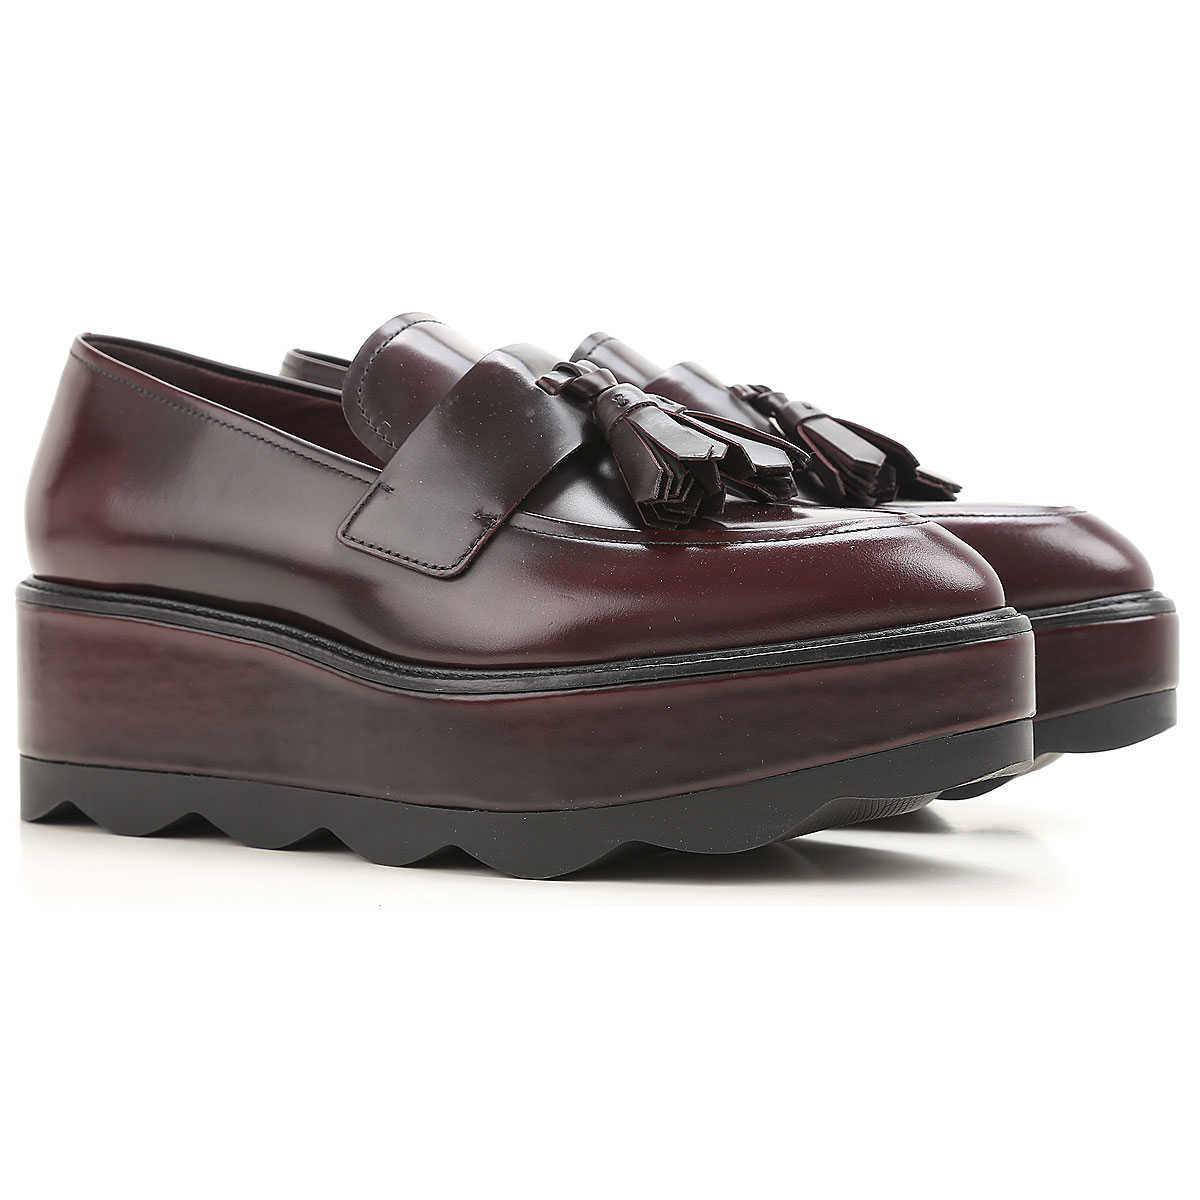 Prada Loafers for Women in Outlet Cordovan USA - GOOFASH